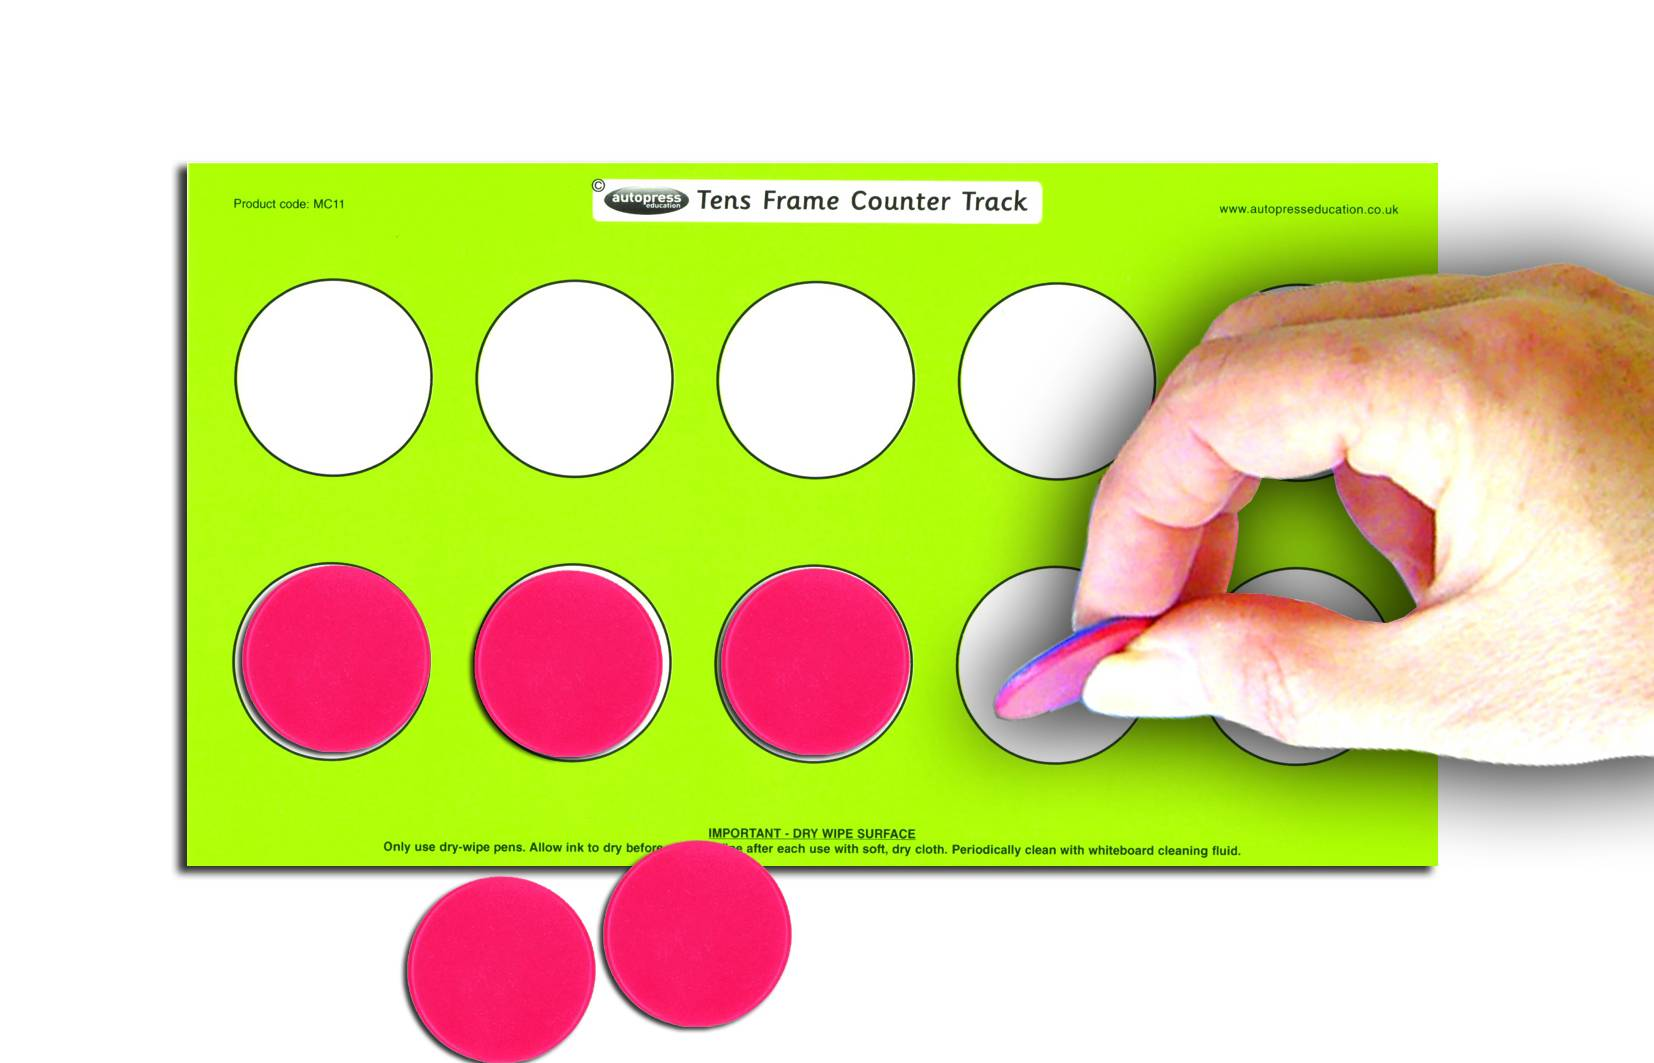 TENS FRAME COUNTER TRACK